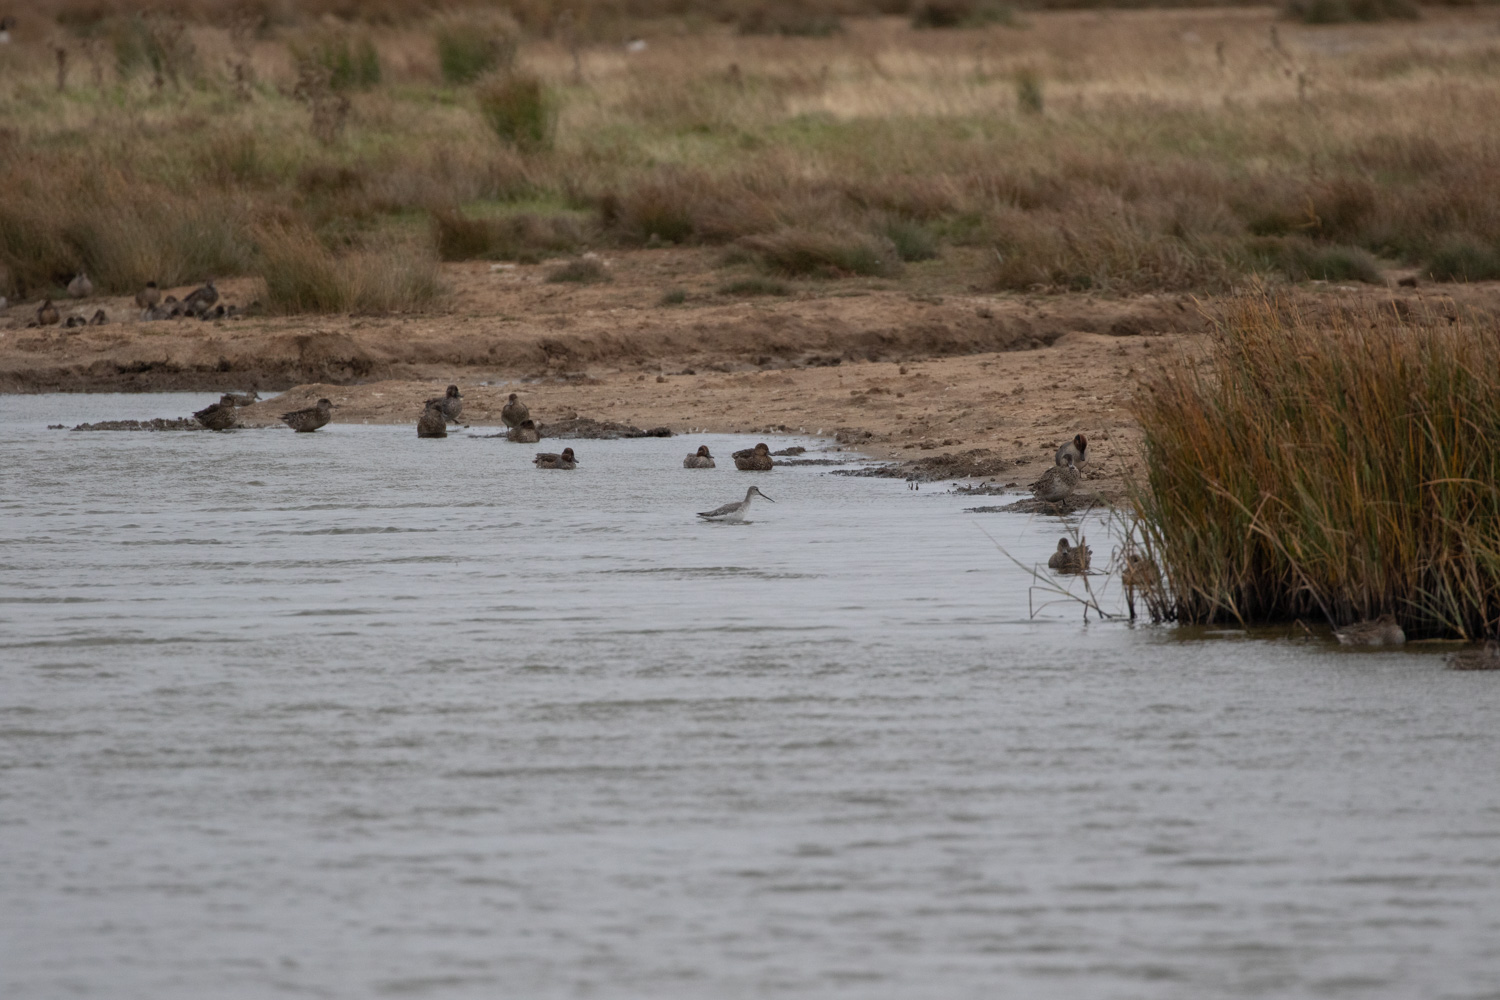 Spotted redshank swimming across